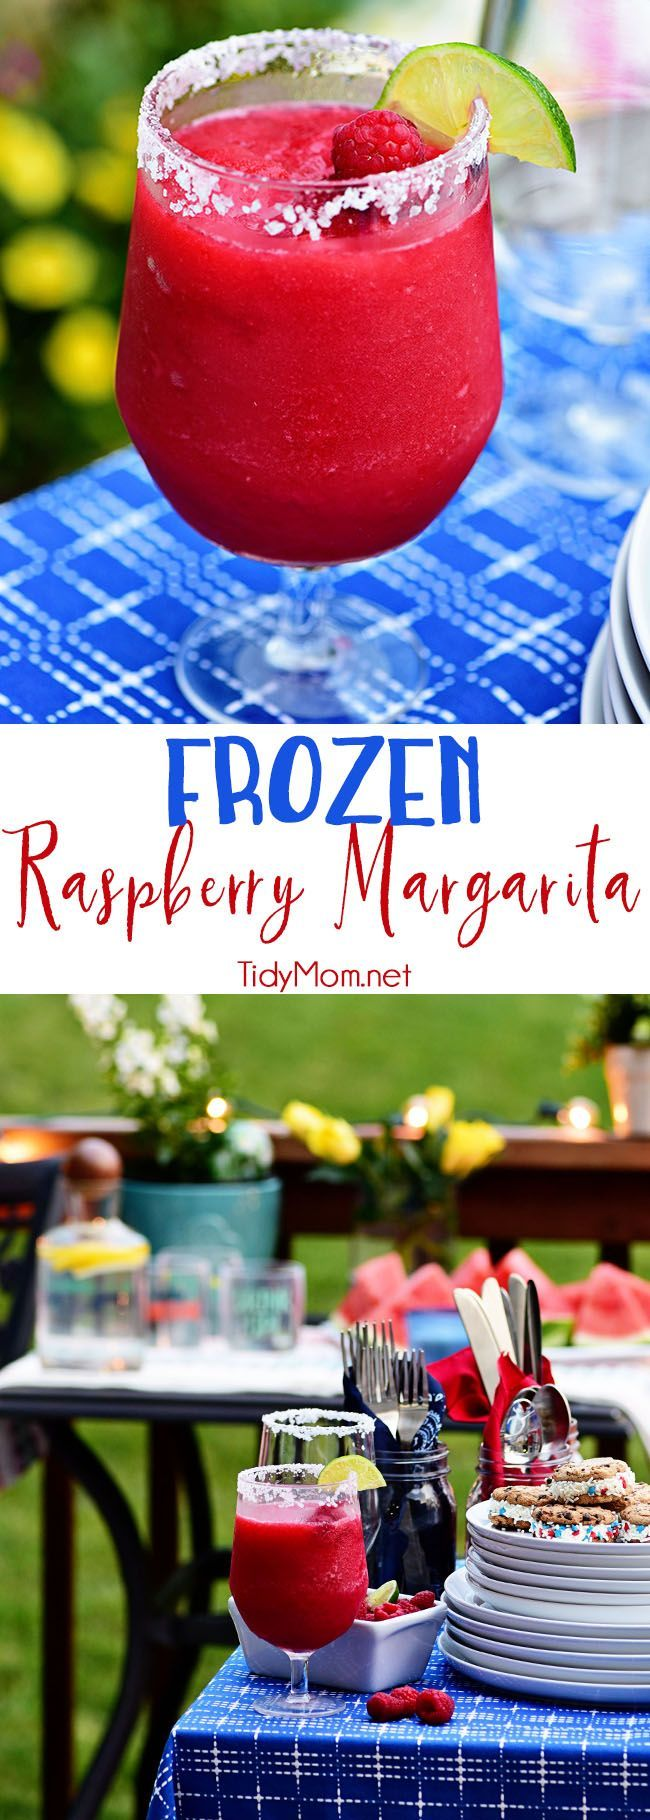 Frozen Raspberry Margarita is the perfect summer cocktail. Raspberry sorbet puts a refreshing twist on the traditional margarita, for a cool party sip! Get the full recipe at TidyMom.net - so delicious and tasty!